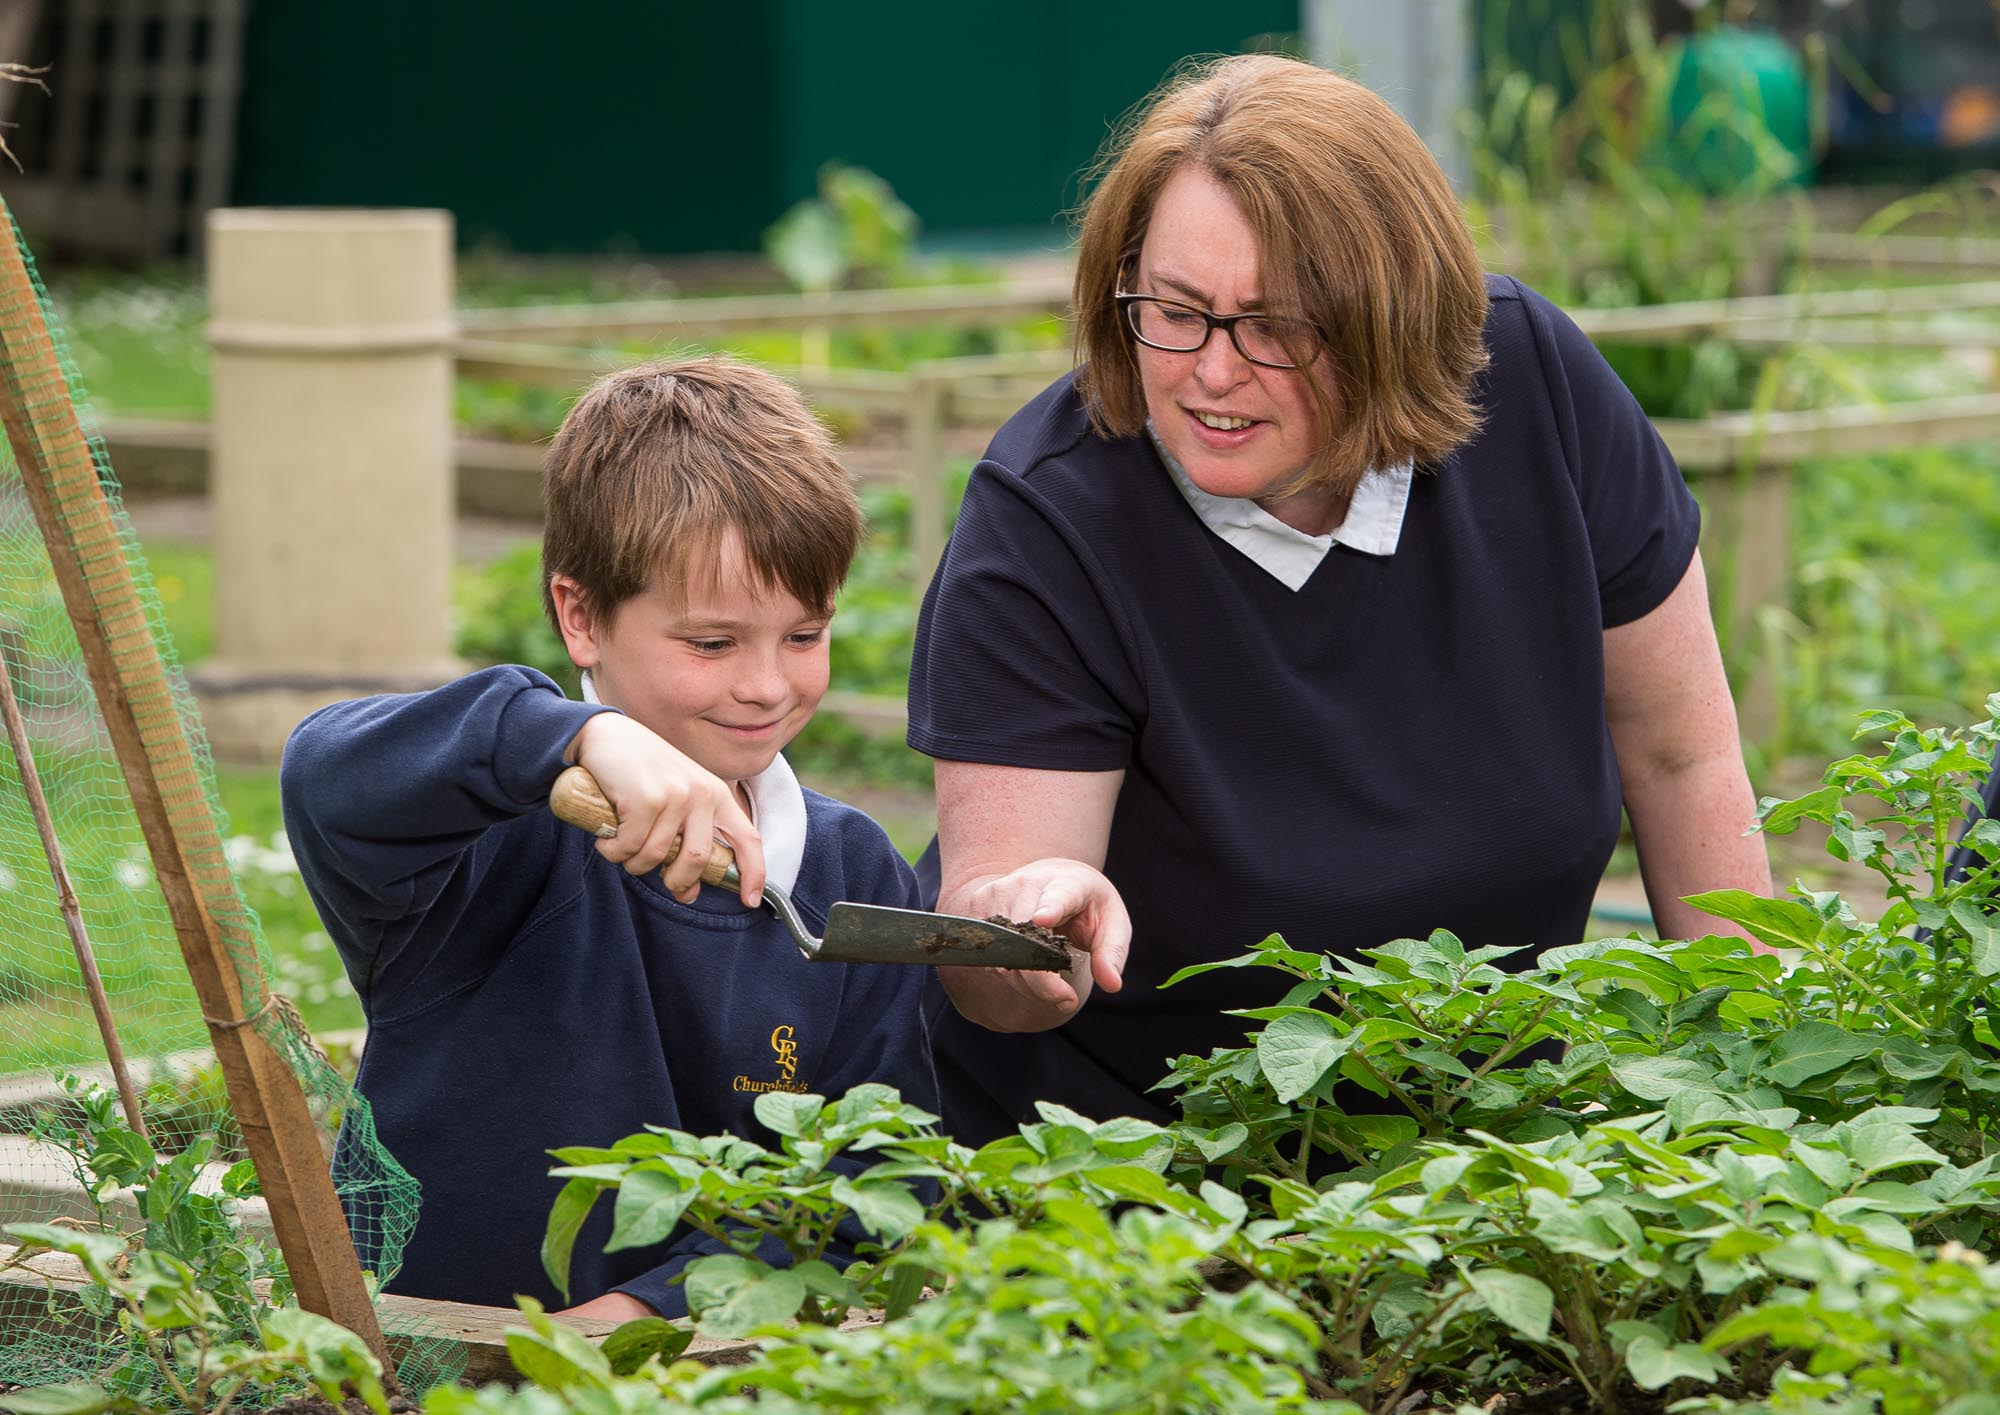 Head Teacher and pupil doing gardening